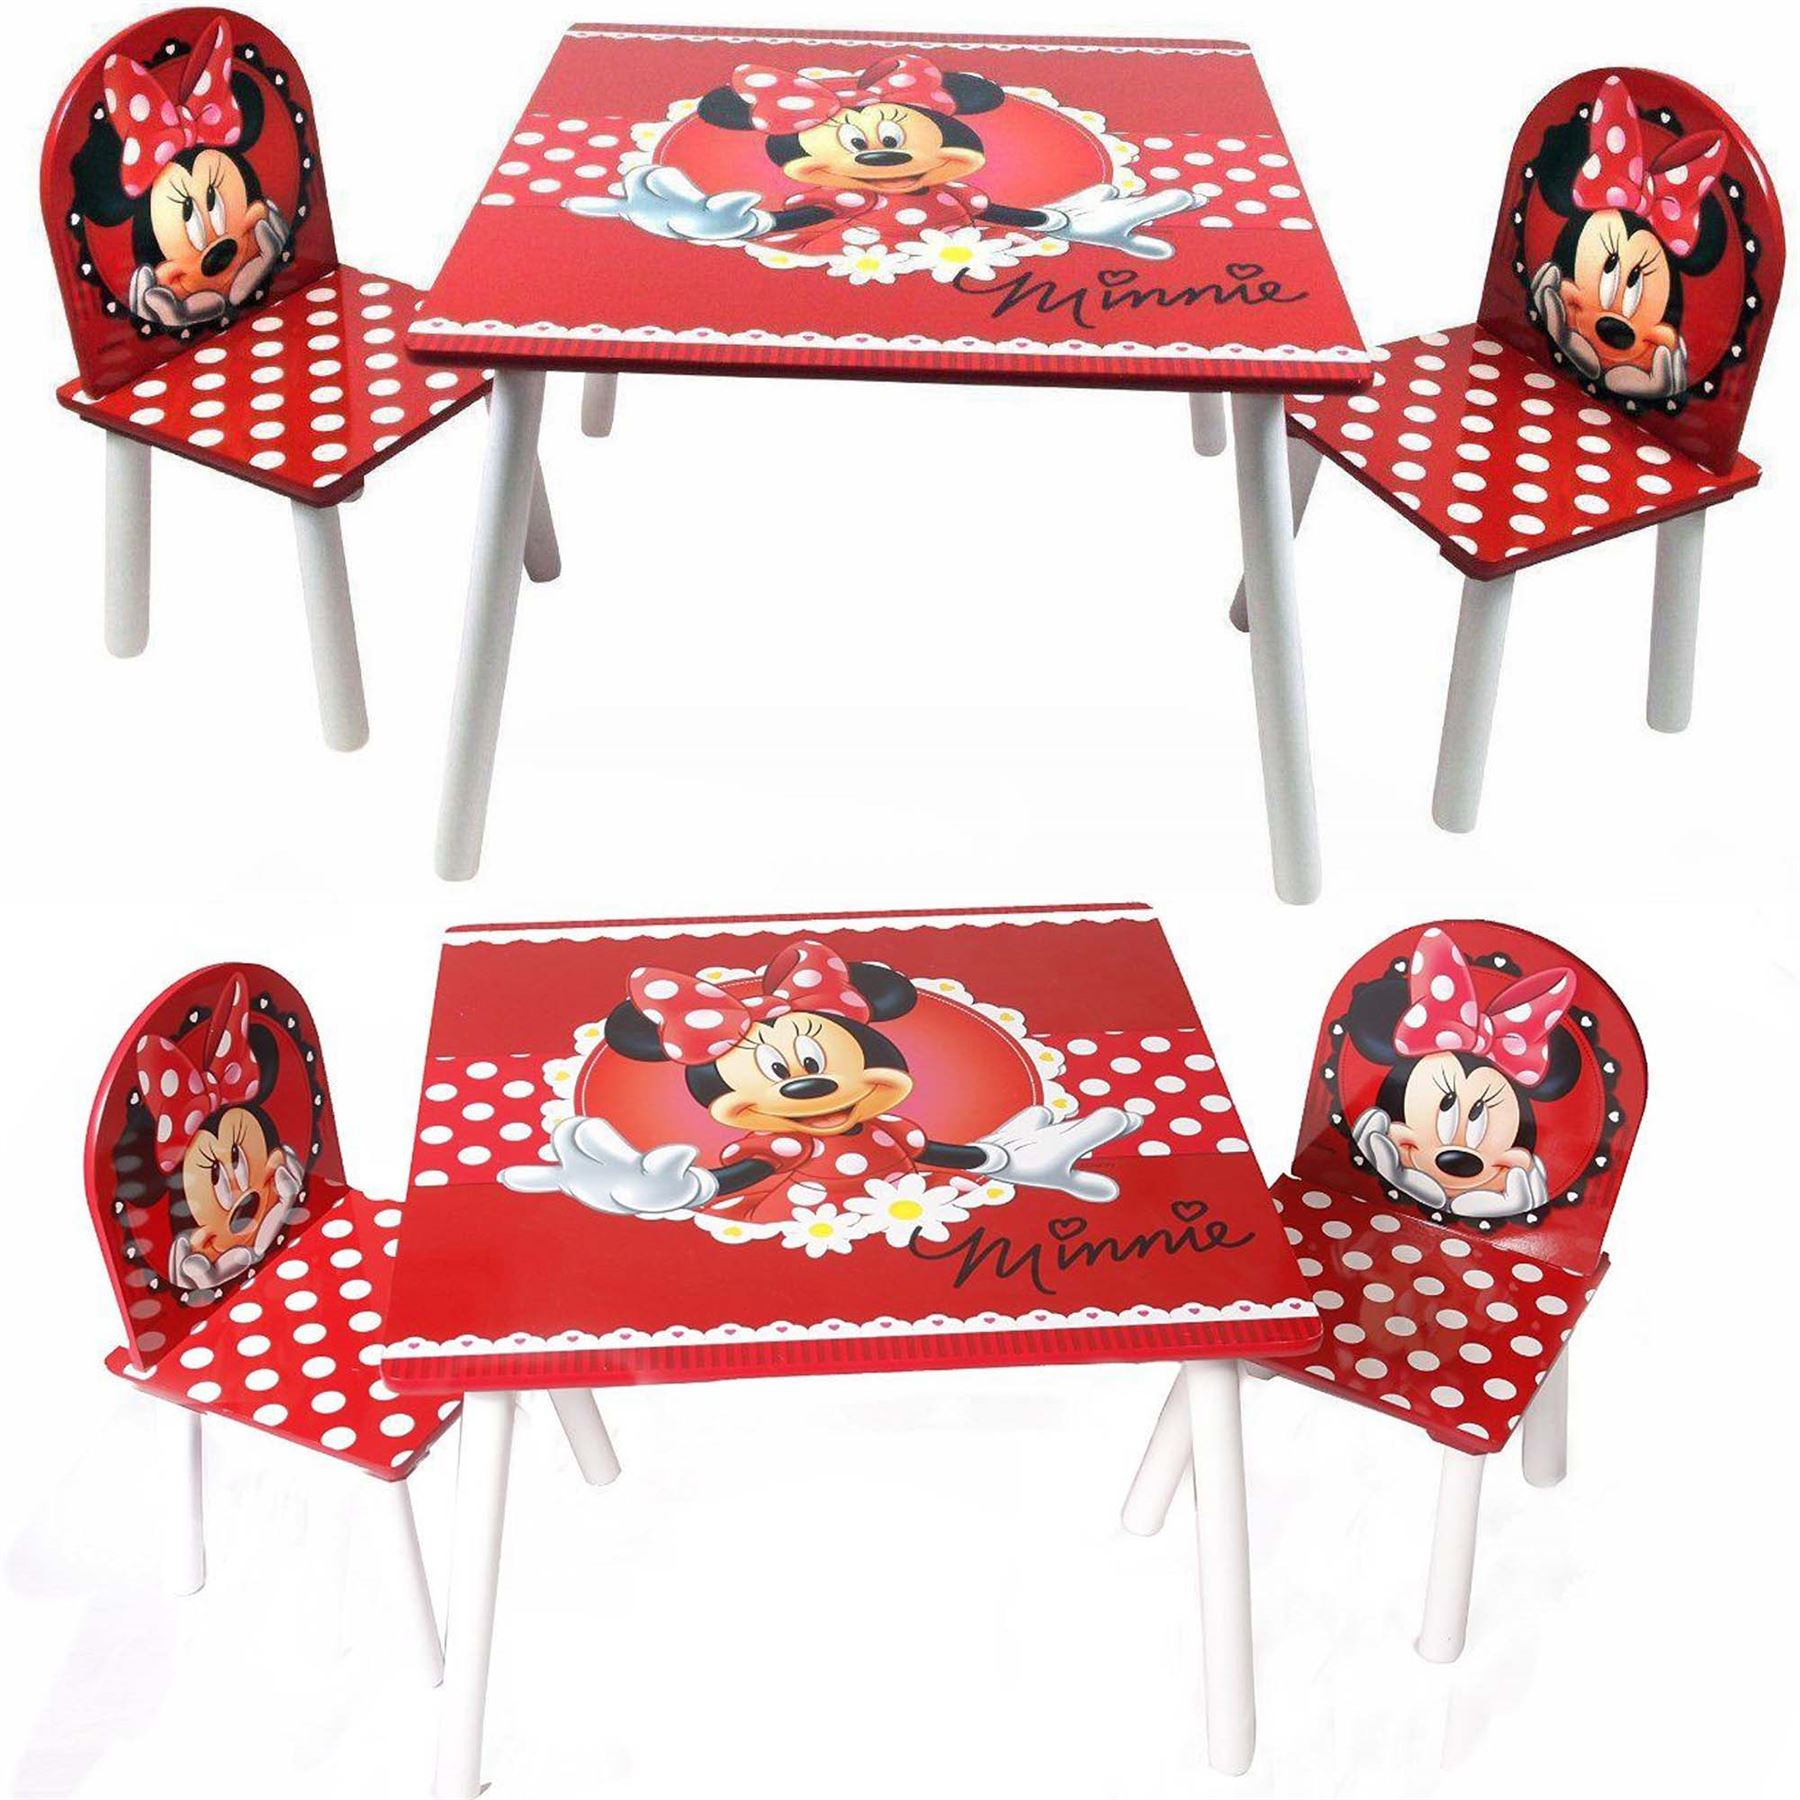 disney table and chair set duncan phyfe dining chairs for sale princess frozen furniture